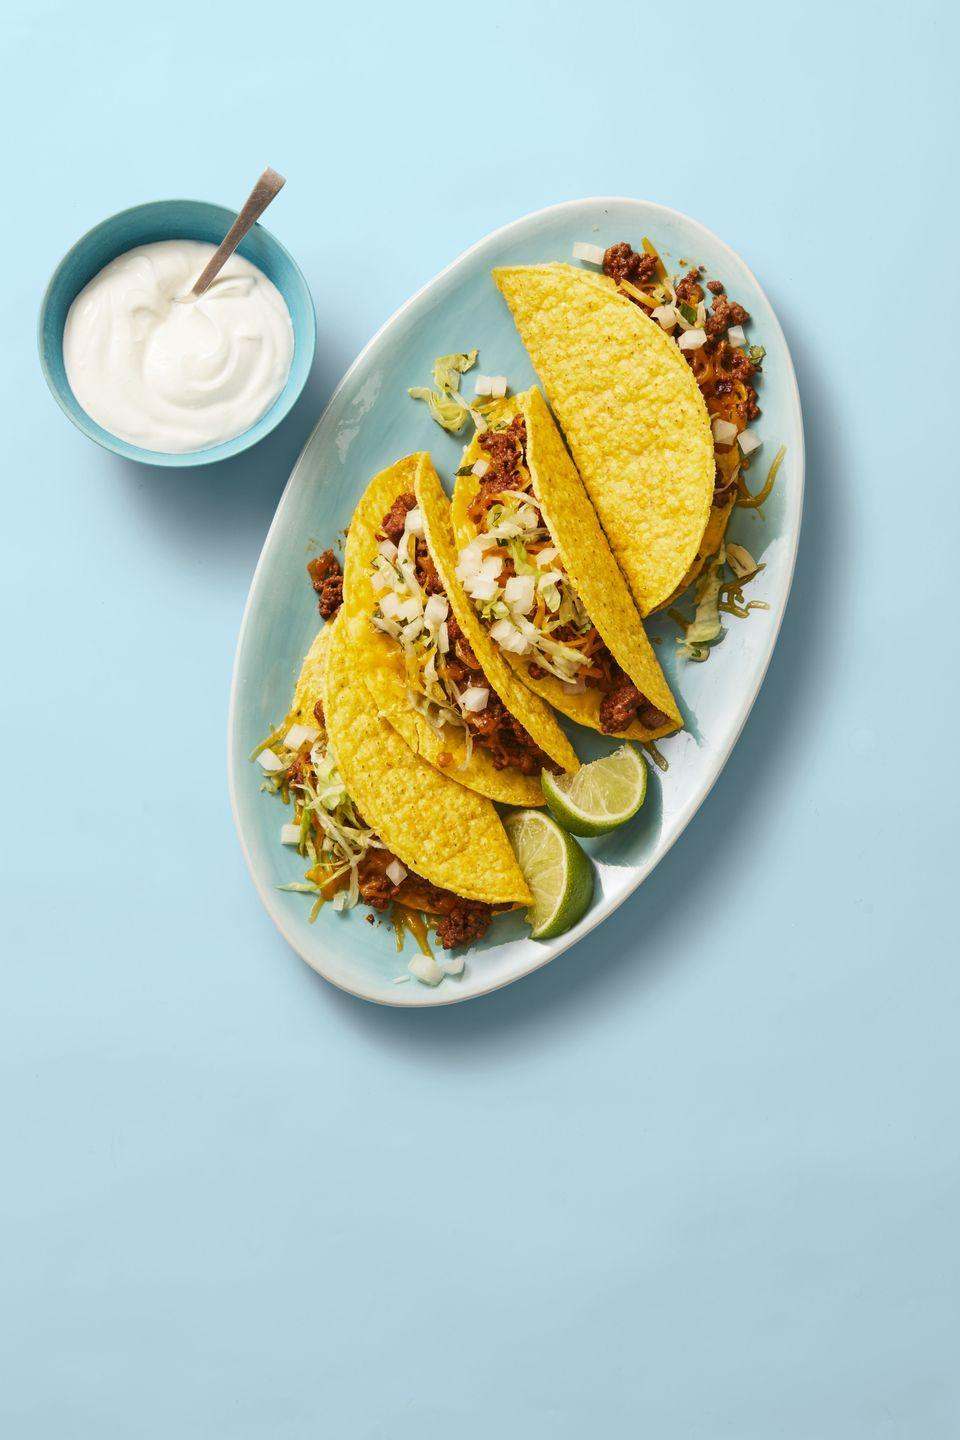 """<p>Lighten up taco night with our slightly spicy take on this crunchy family fave.</p><p><em><a href=""""https://www.goodhousekeeping.com/food-recipes/a29849486/turkey-tacos-recipe/"""" rel=""""nofollow noopener"""" target=""""_blank"""" data-ylk=""""slk:Get the recipe for Turkey Tacos »"""" class=""""link rapid-noclick-resp"""">Get the recipe for Turkey Tacos »</a></em></p>"""